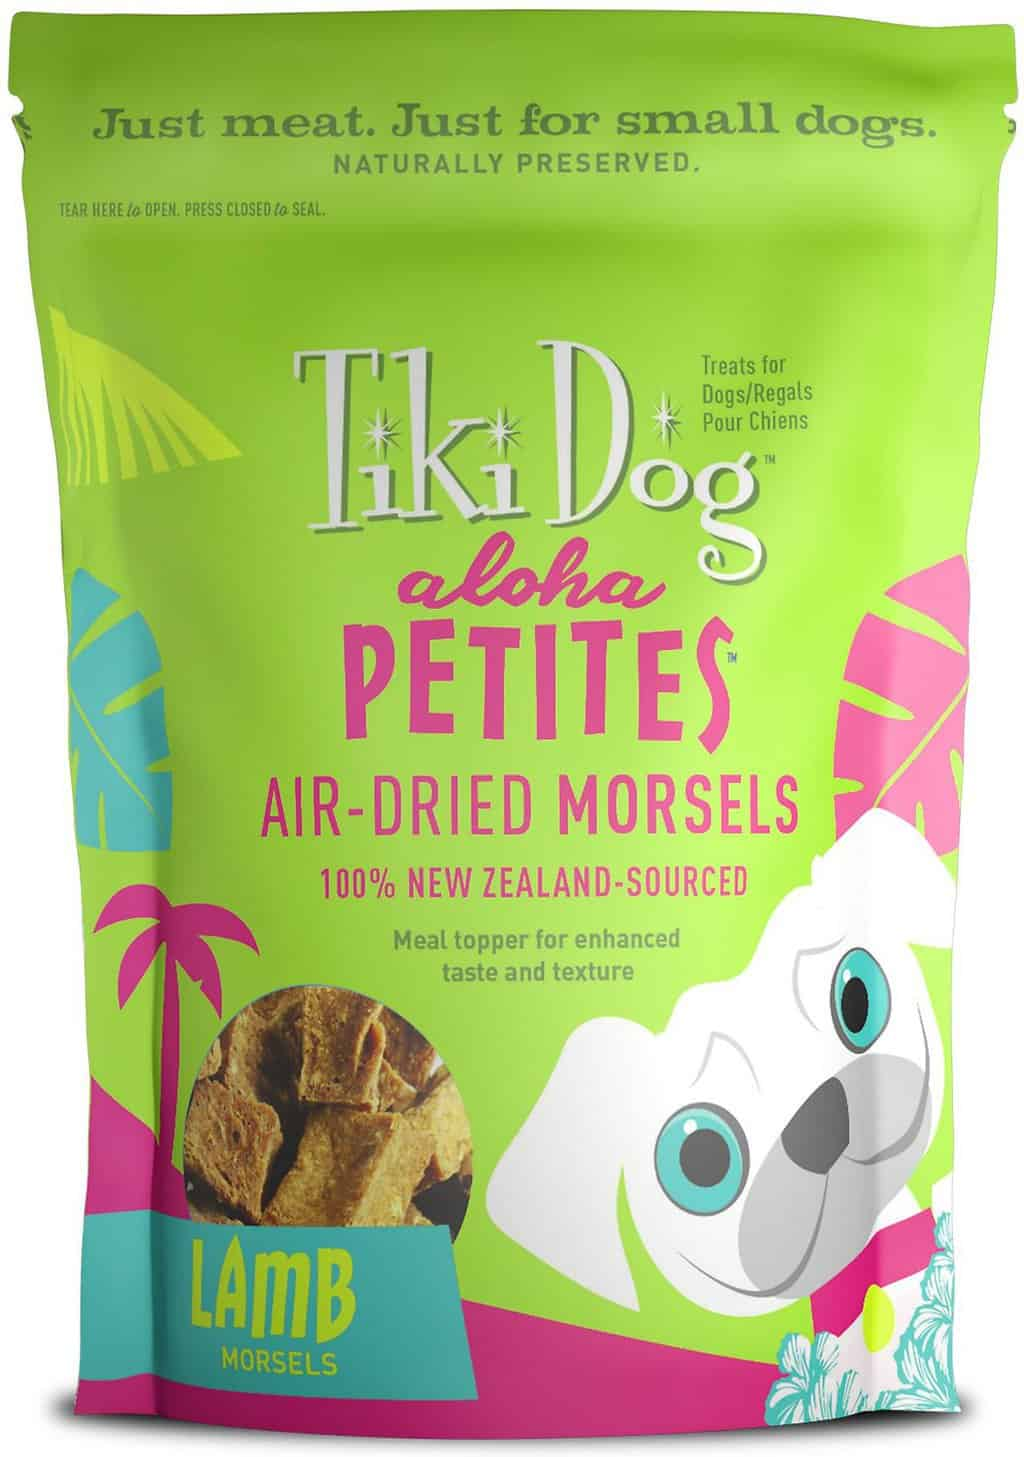 Tiki Dog Food: 2021 Reviews, Recalls & Coupons 62